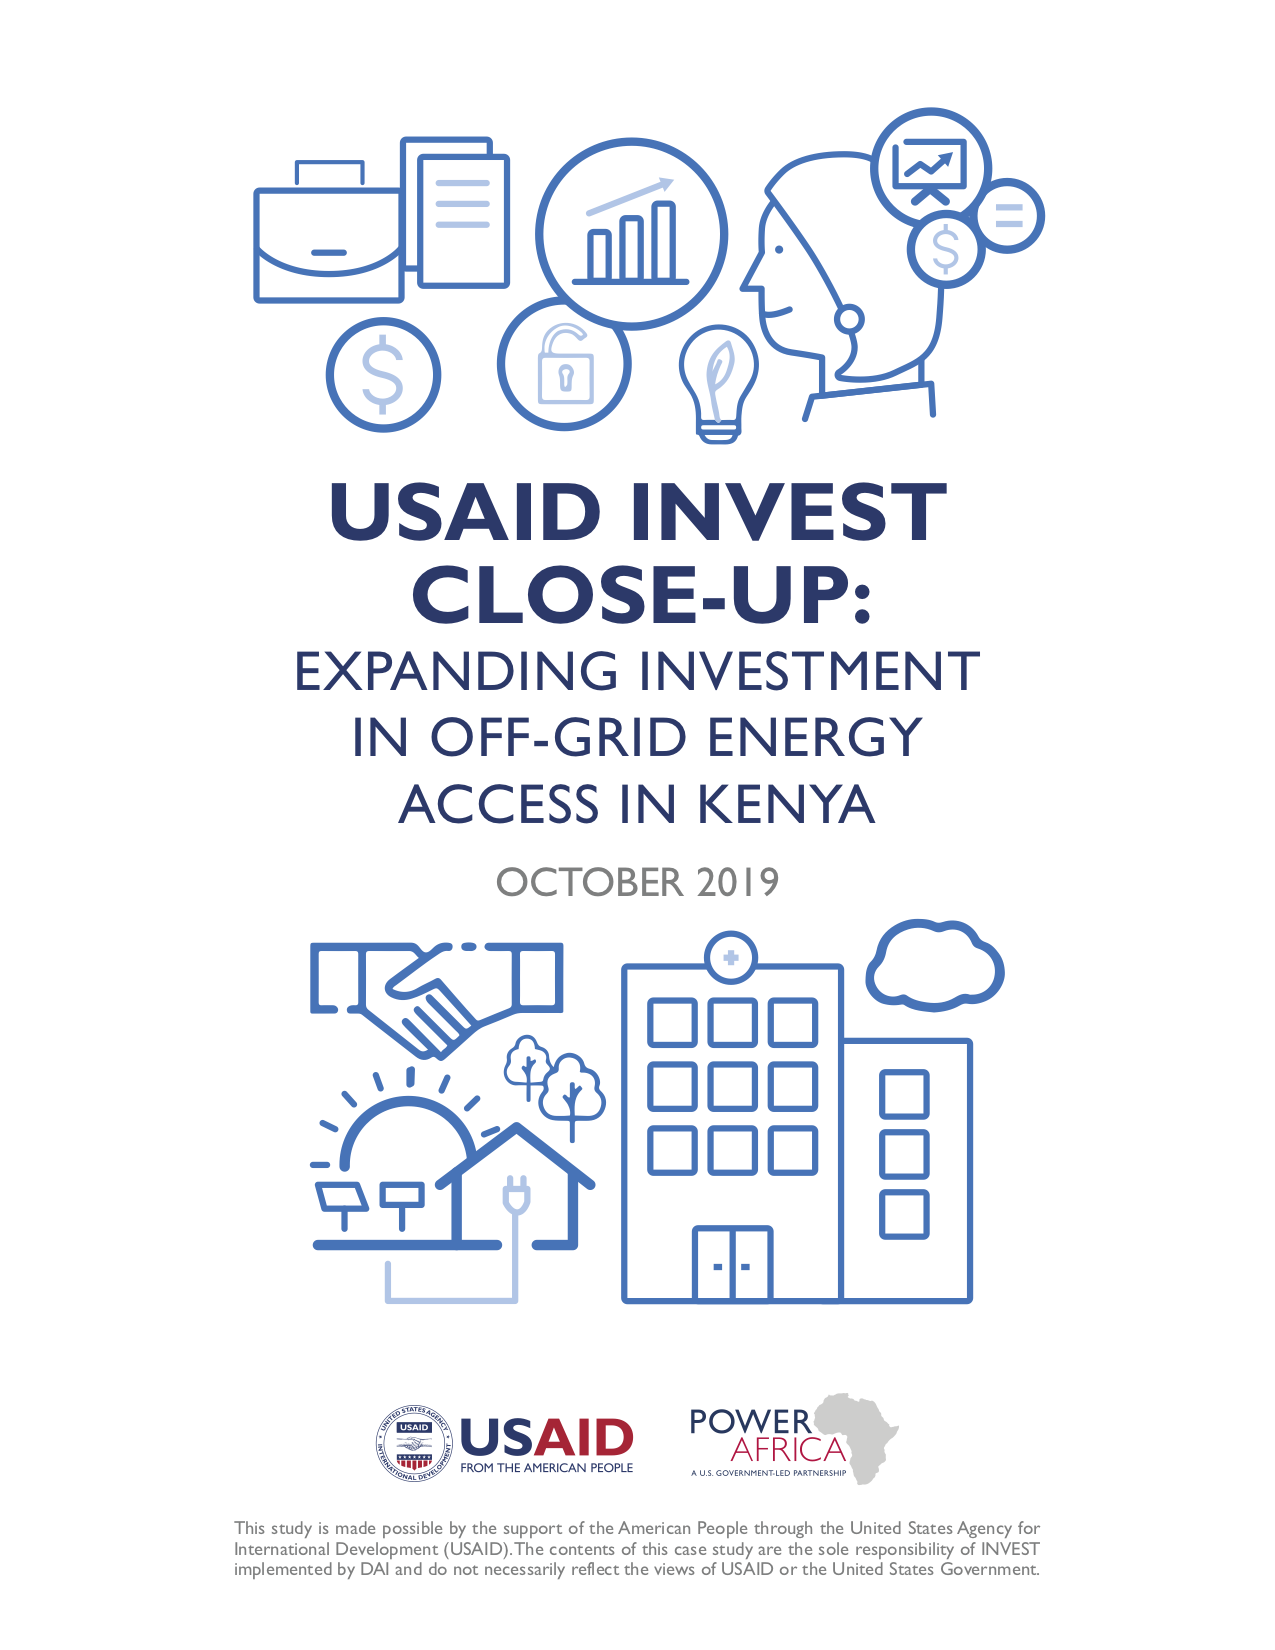 USAID INVEST Close-Up: Expanding Investment in Off-Grid Energy Access in Kenya